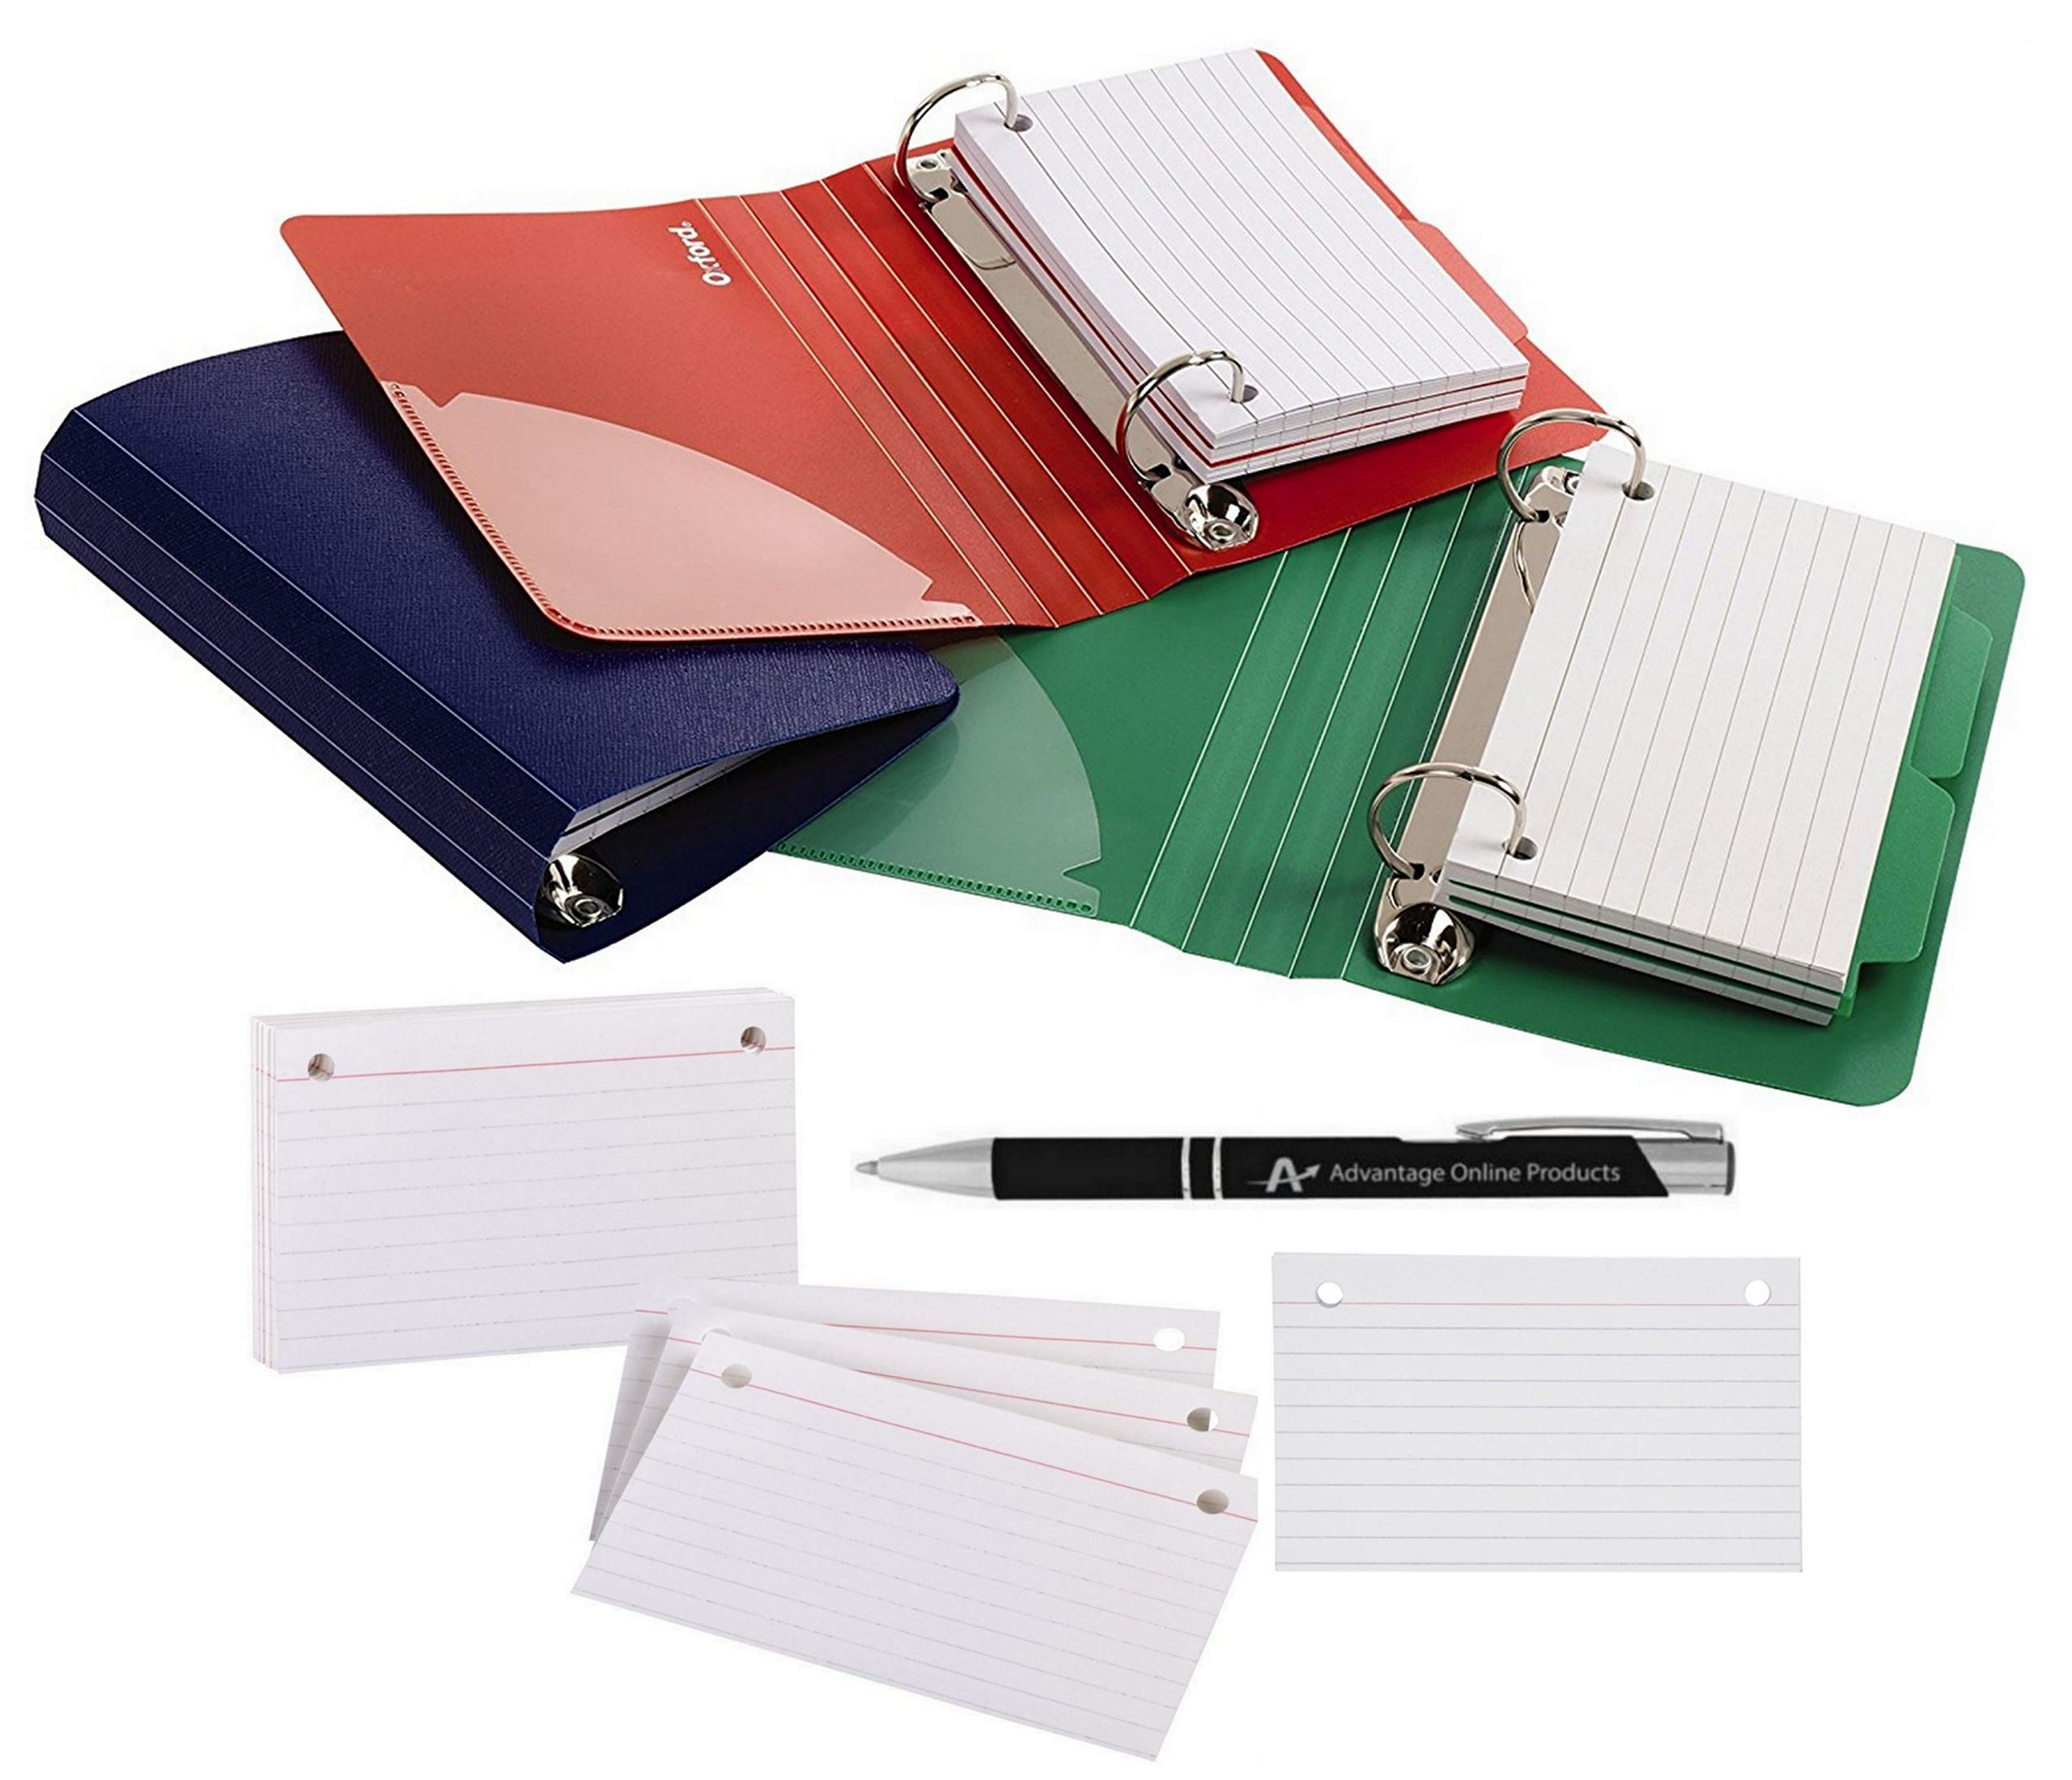 Value Bundle of 3 Oxford Poly Index Card Binders, 3 x 5 Inches, Includes 50 Pre-Punched Cards (73569) and 3 Index Card Refills (07351) Plus Bonus AdvantageOP Custom Pen by Advantage Online Products, LLC